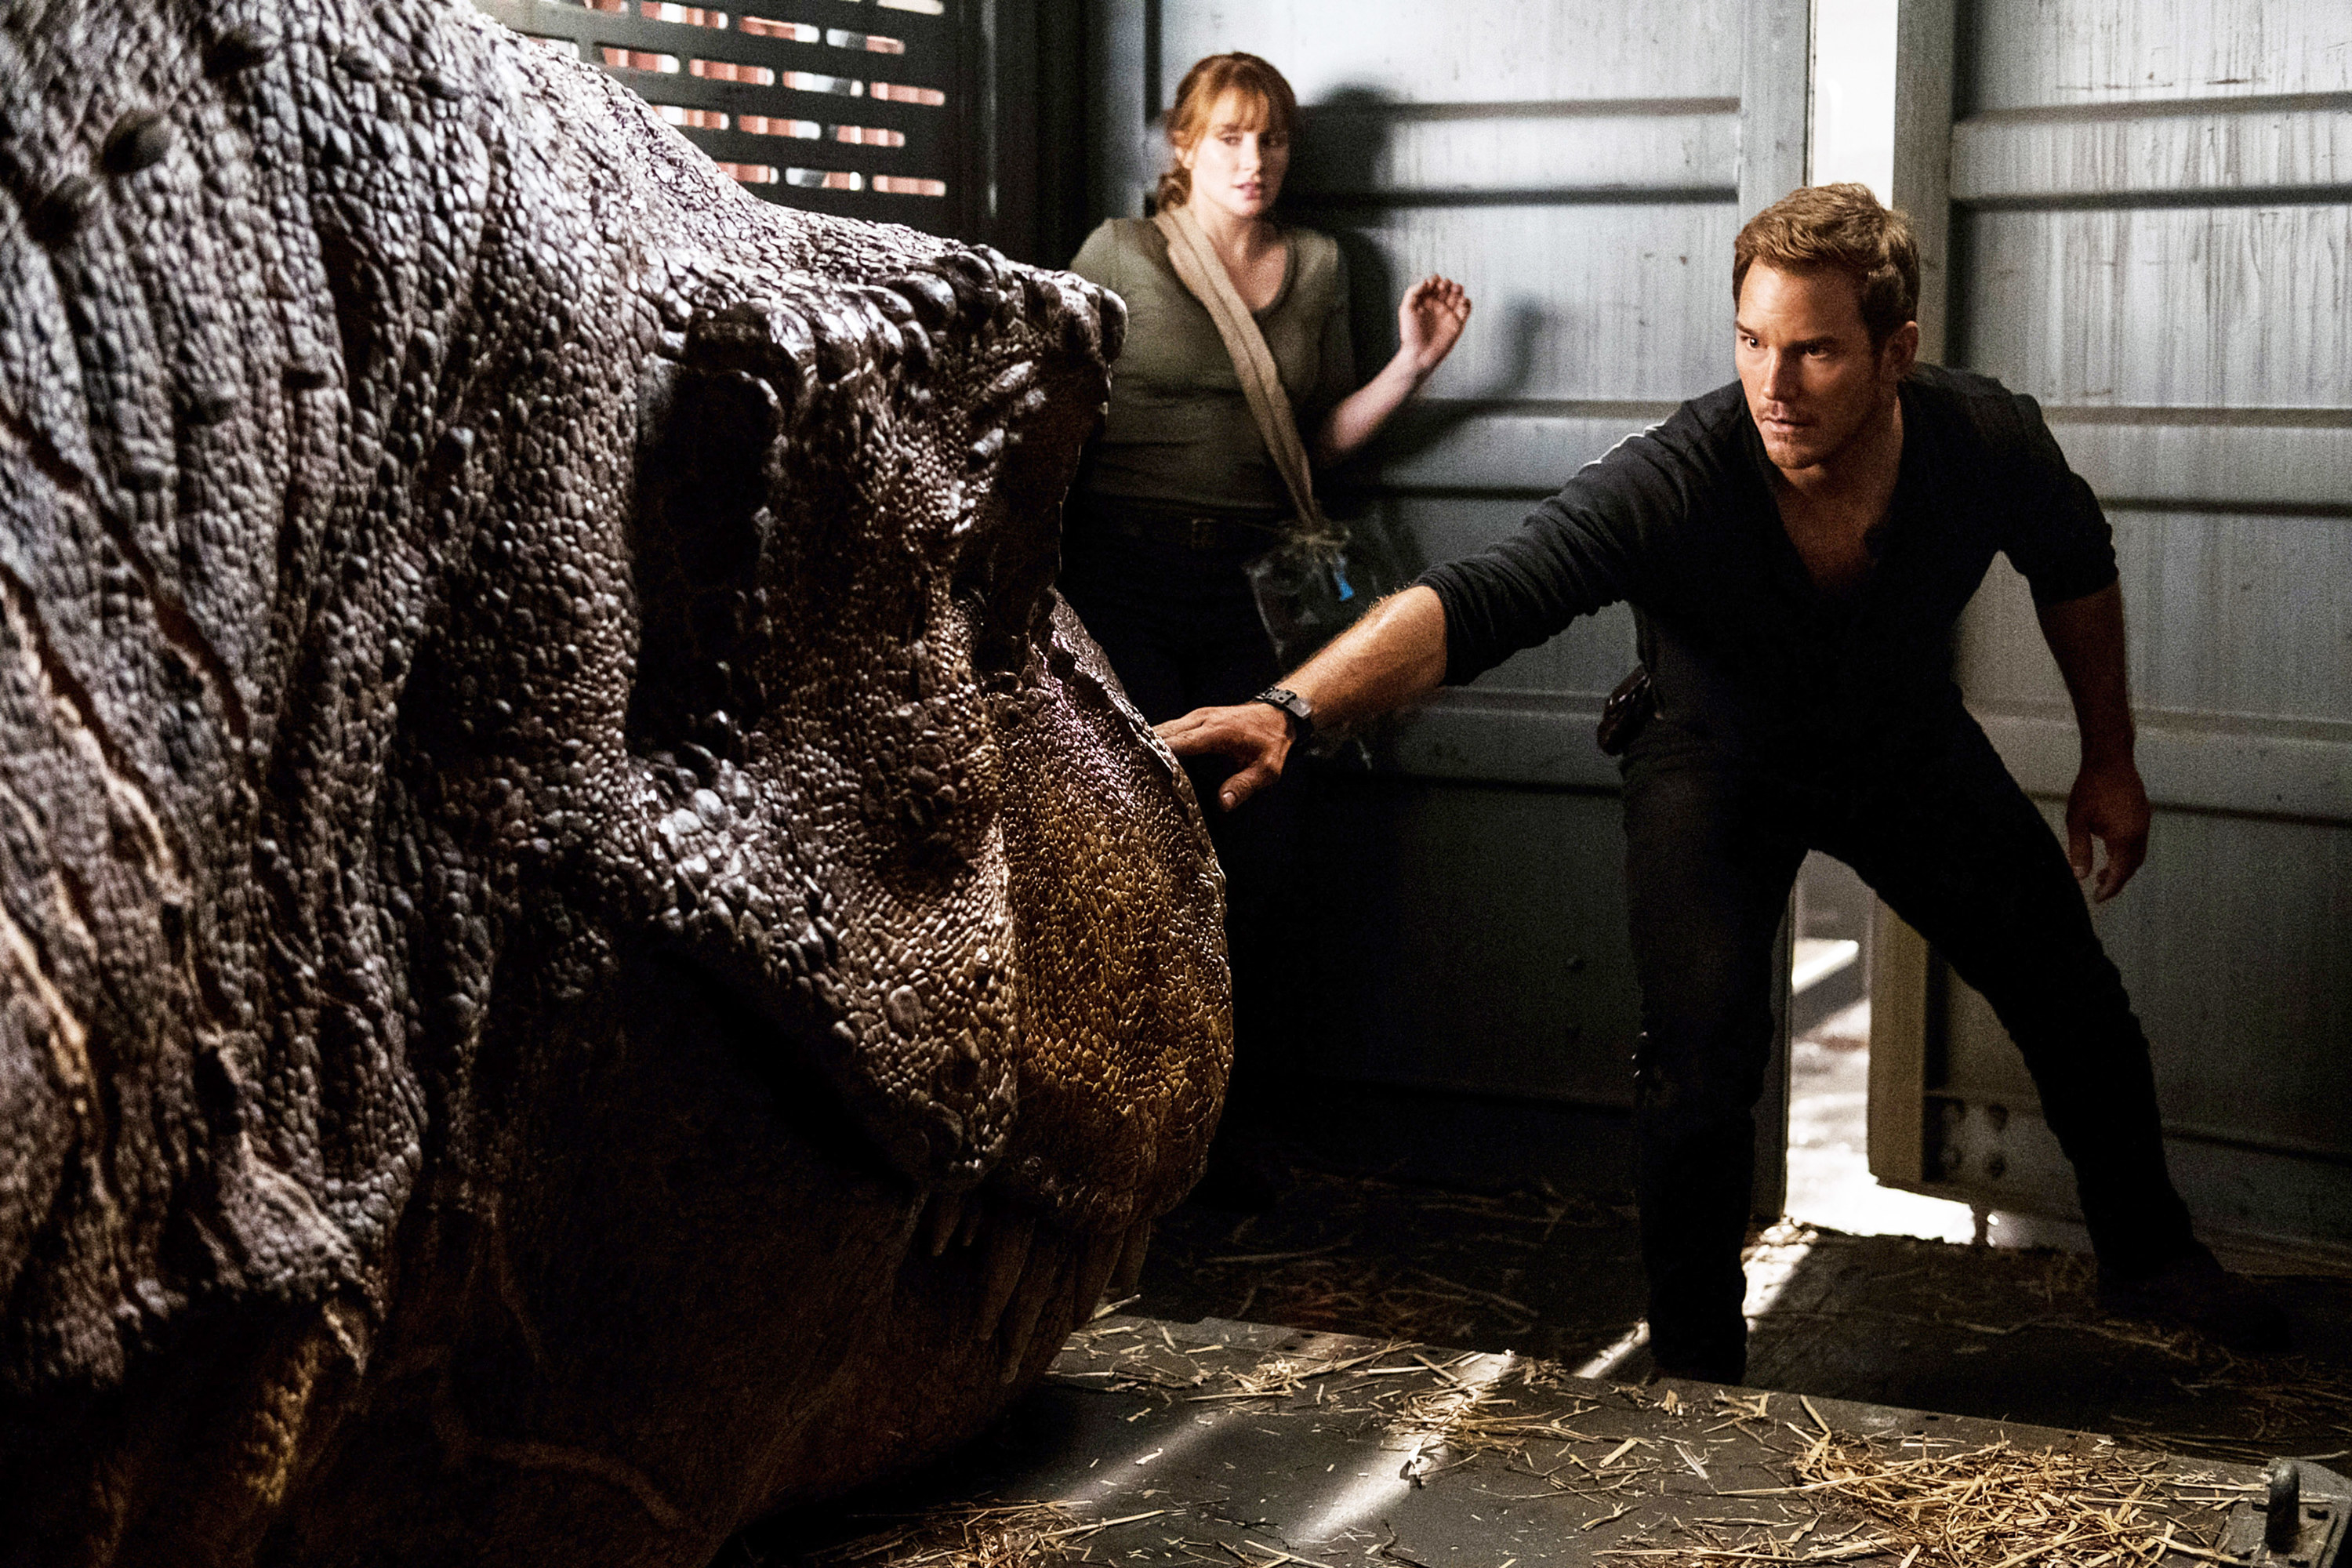 Owen Grady stands with an arm out to calm down the Indominus